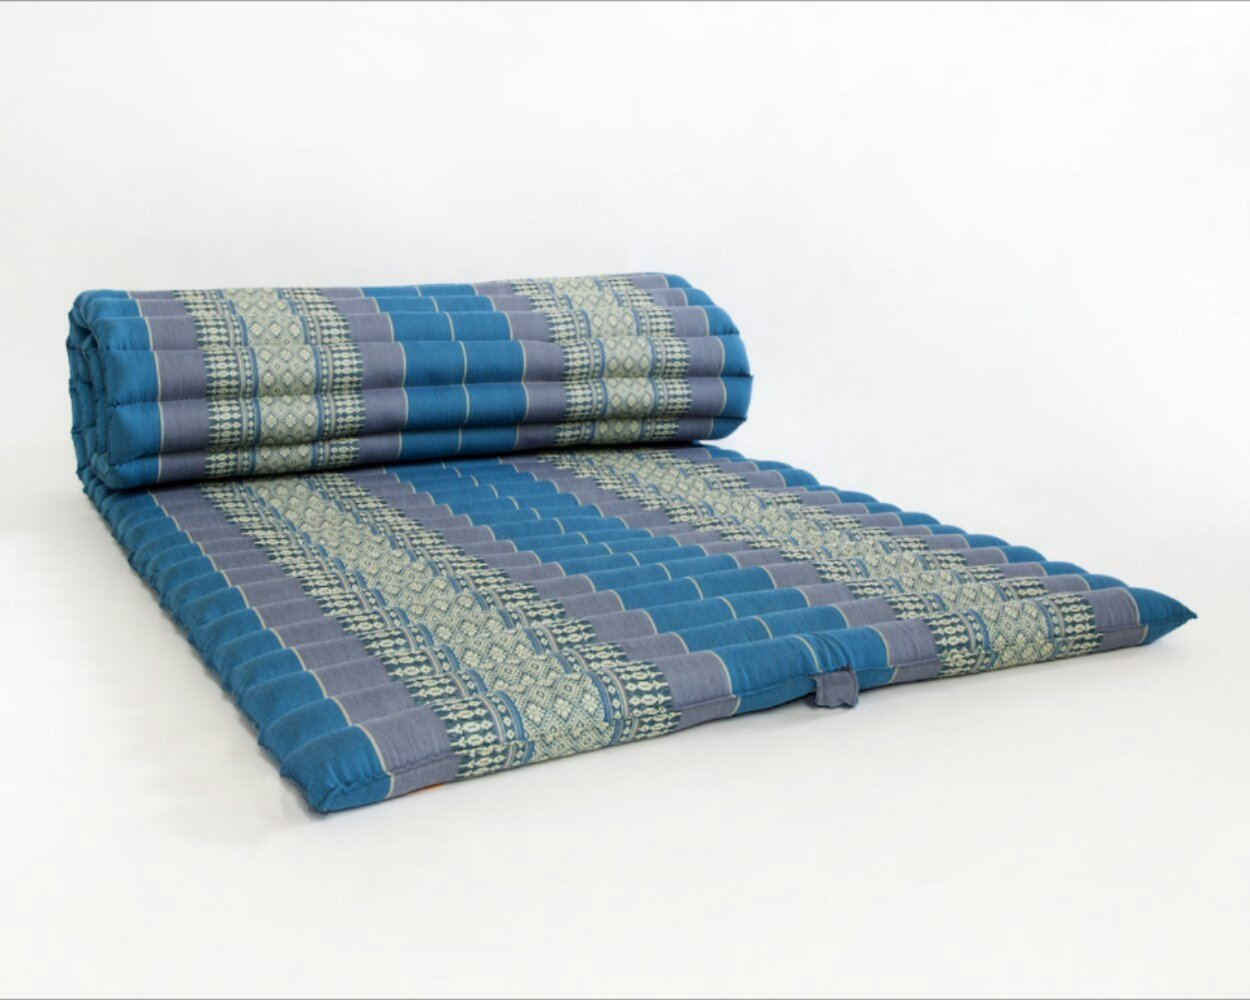 Roll up Thai Mattress, 100% Kapok, (Premium Grade) (Blue, 69x30x2 inch) by KiangDin Product